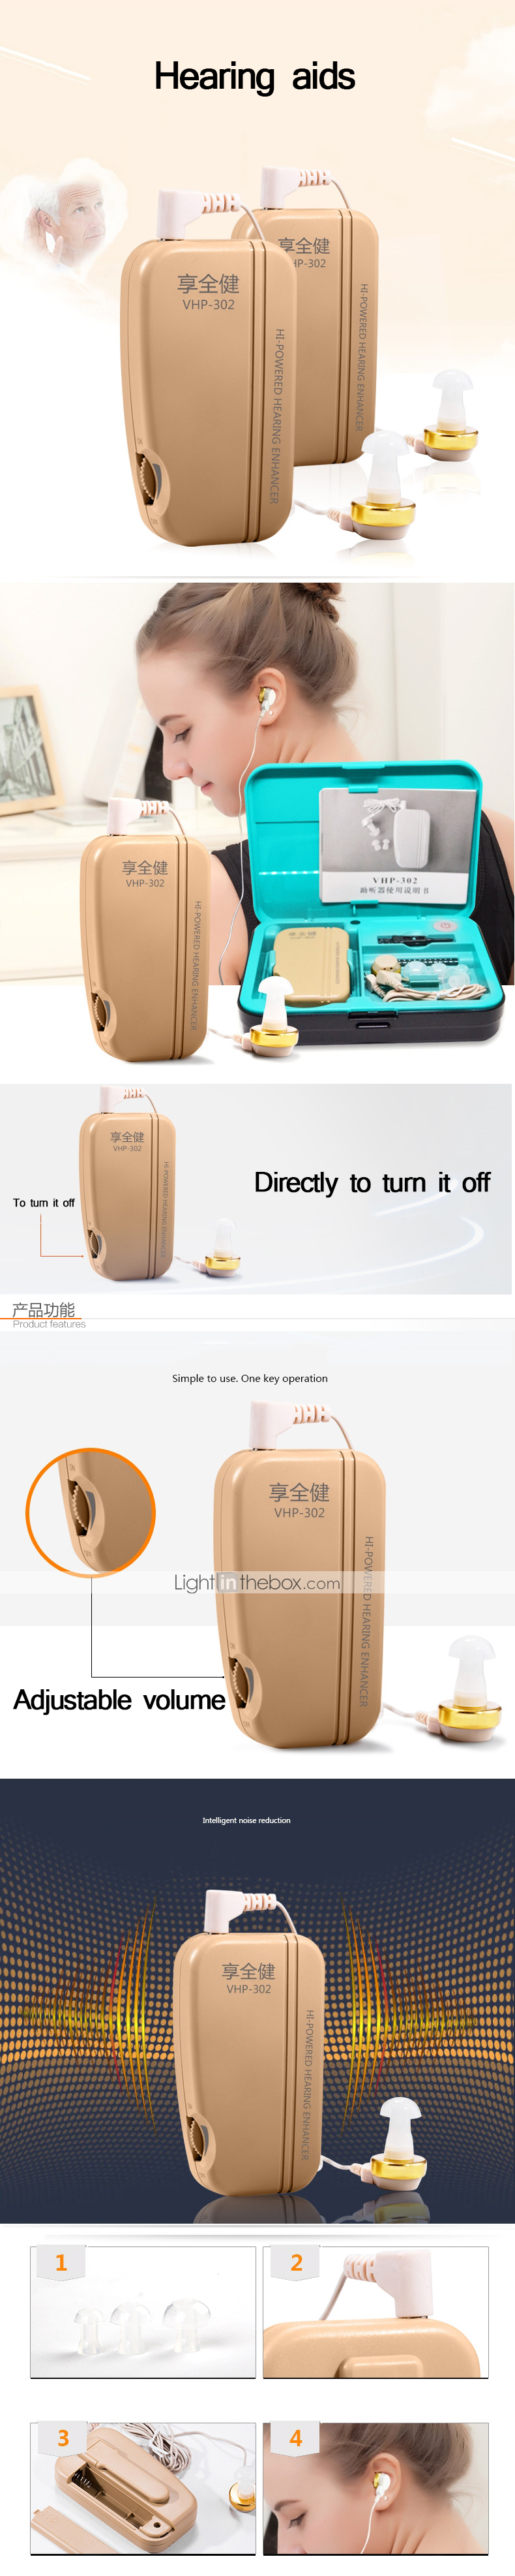 Factory Oem Ear Care Vhp 302 For Men And Women Mini Style Power Aid Vhp221 Productschina Bte Digital Hearing Amplifier Photos